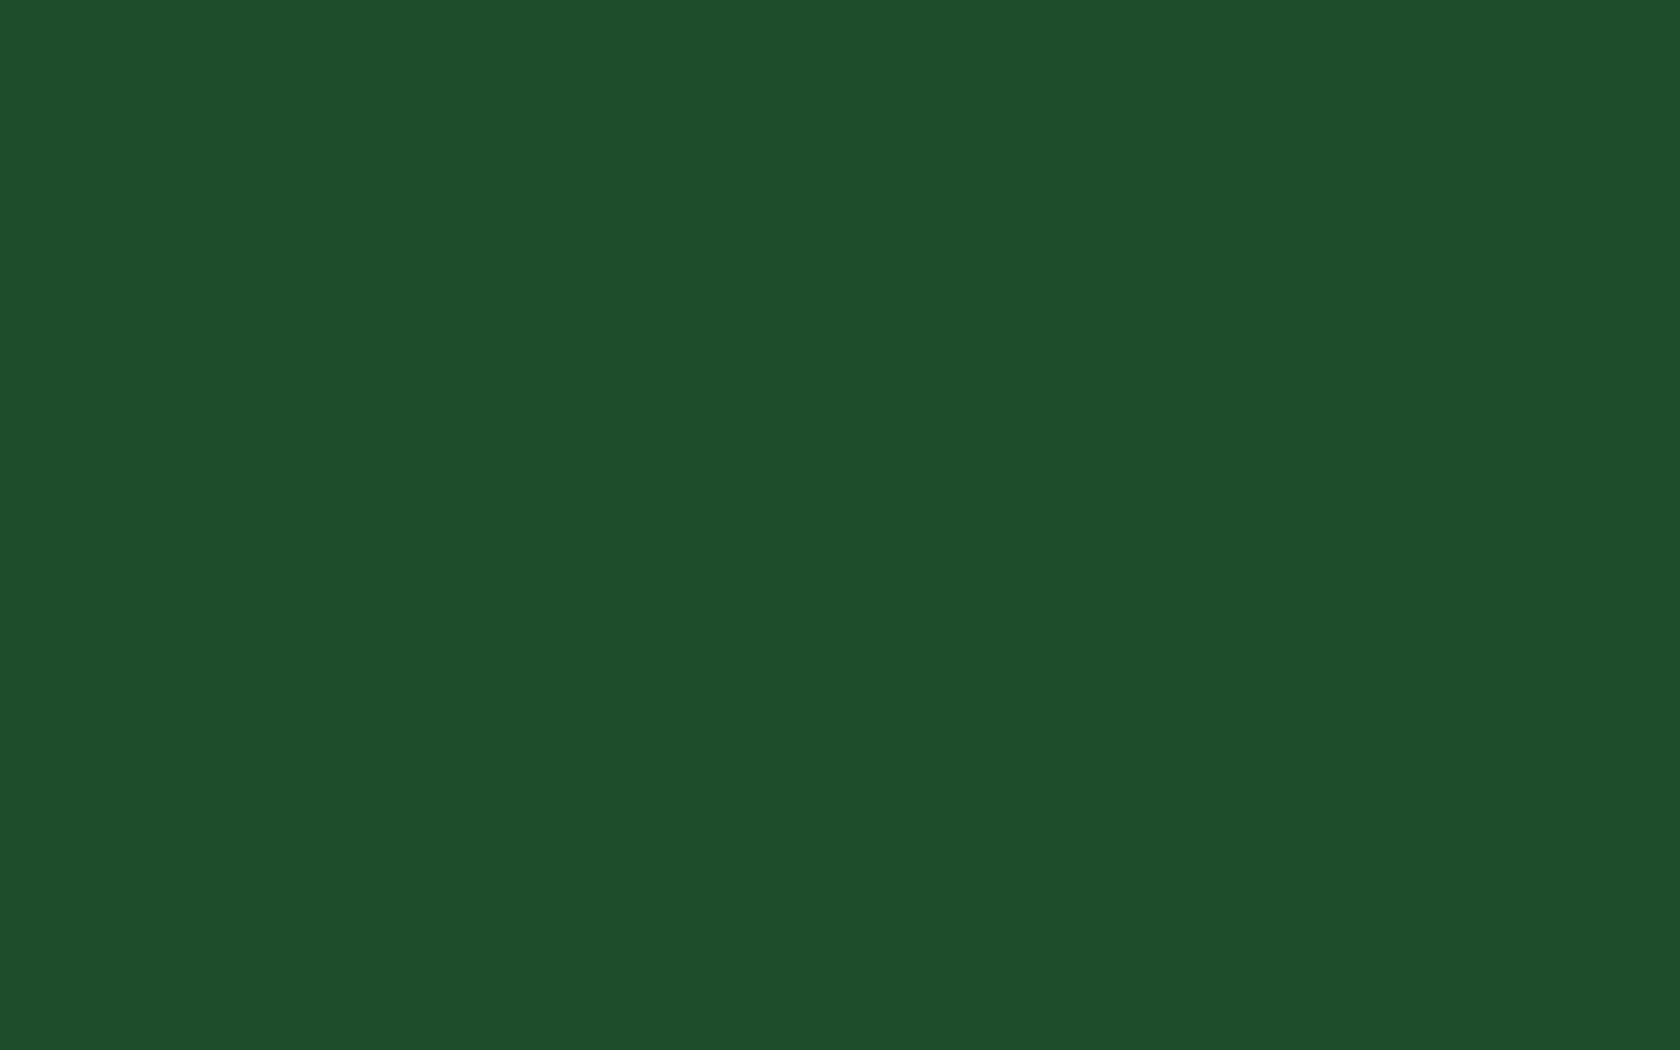 1680x1050 Cal Poly Green Solid Color Background